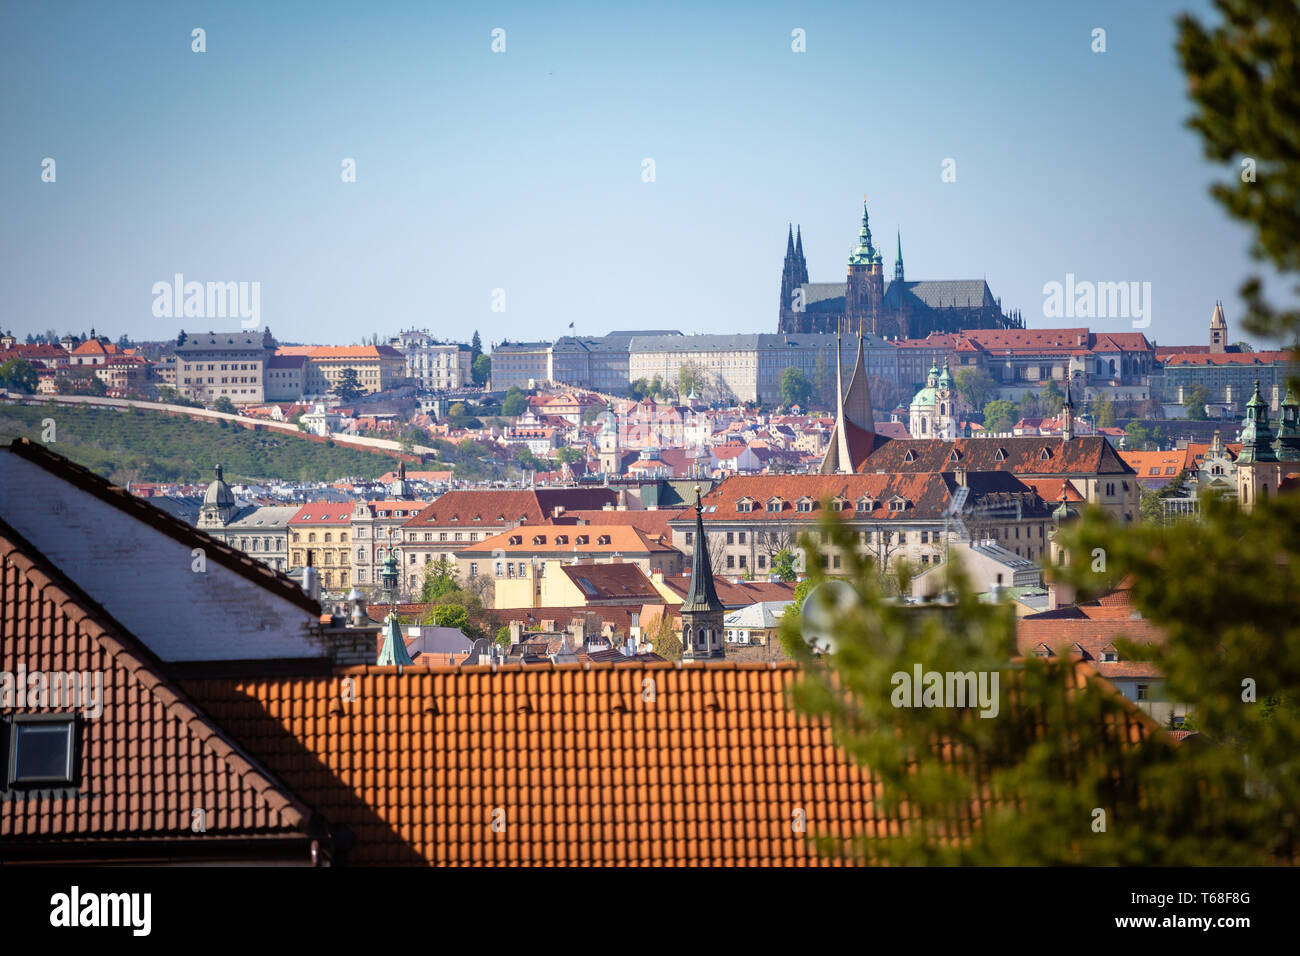 View of Prague Castle over red roof from Vysehrad area at sunset lights, Prague, Czech Republic - Stock Image